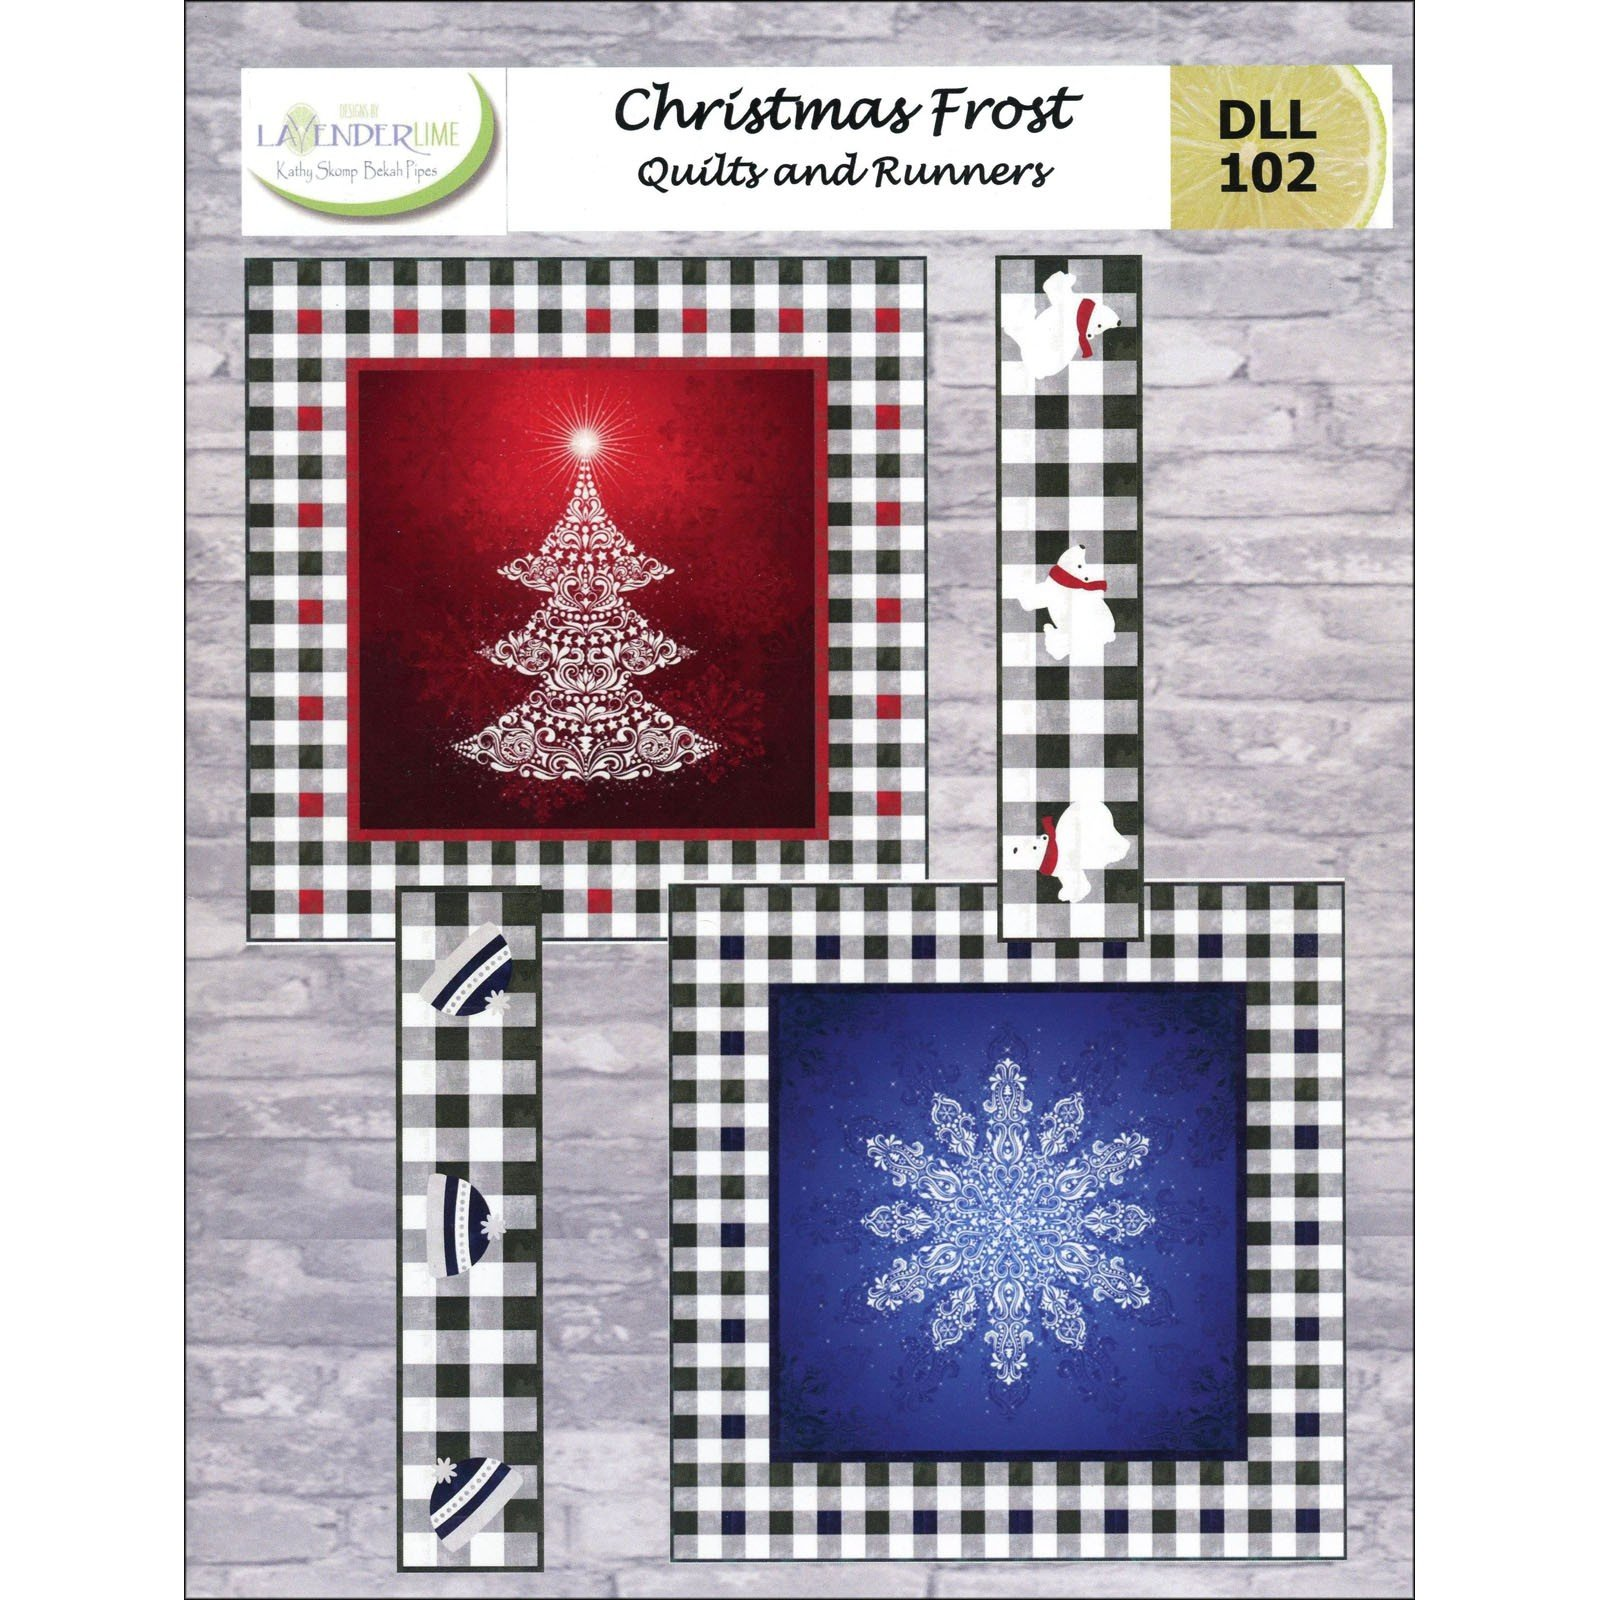 Christmas Frost<br/>Lavender Lime DLL102